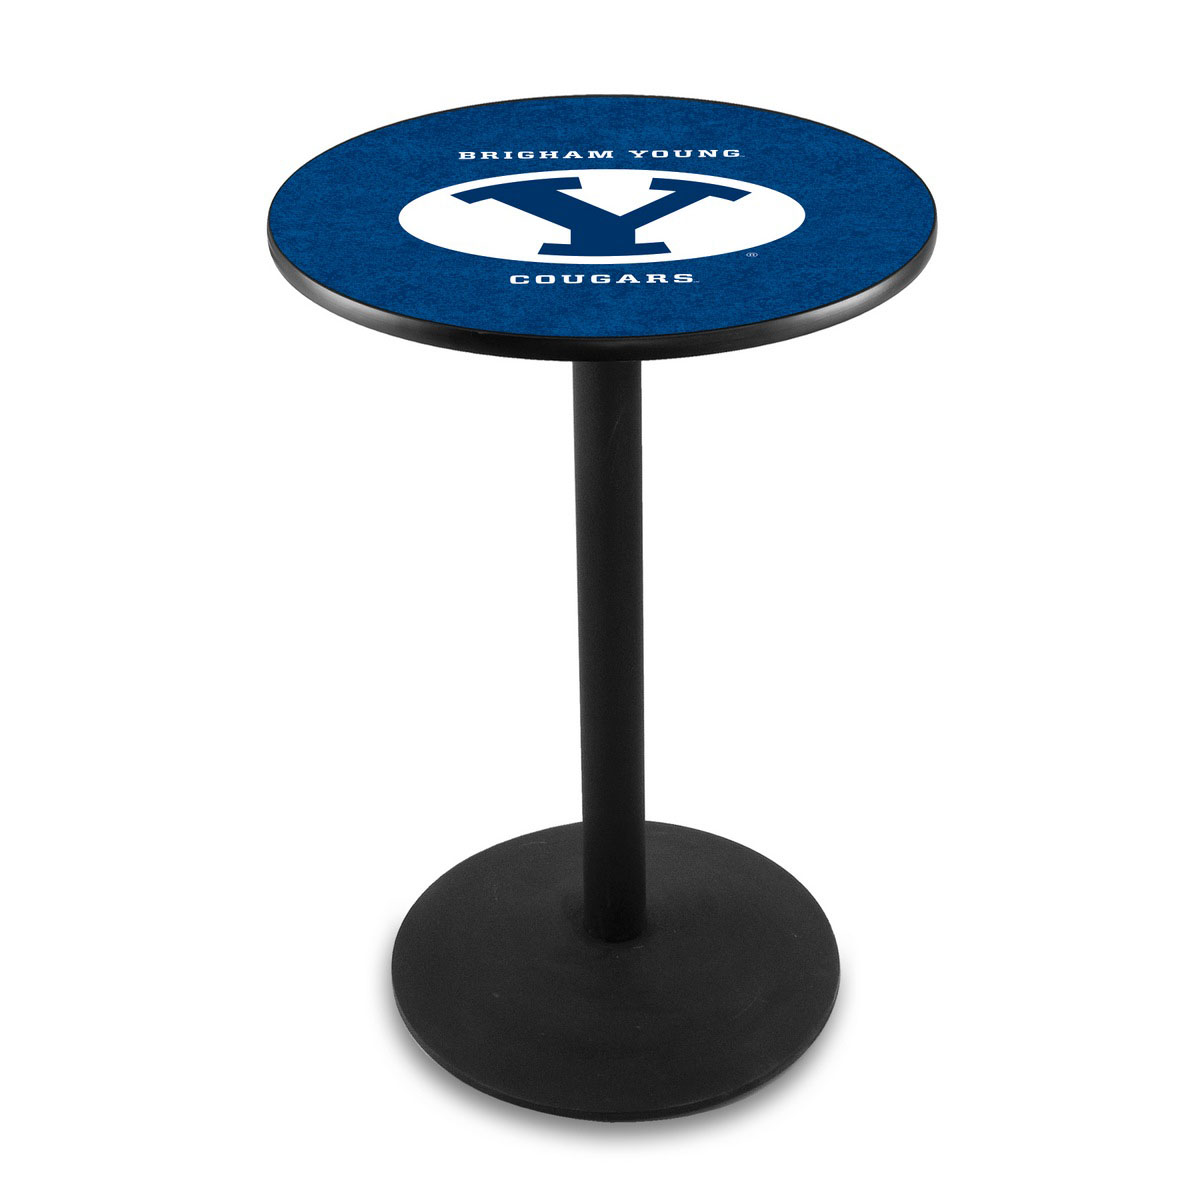 Exquisite Brigham Young University Logo Pub Bar Table Round Stand Product Photo